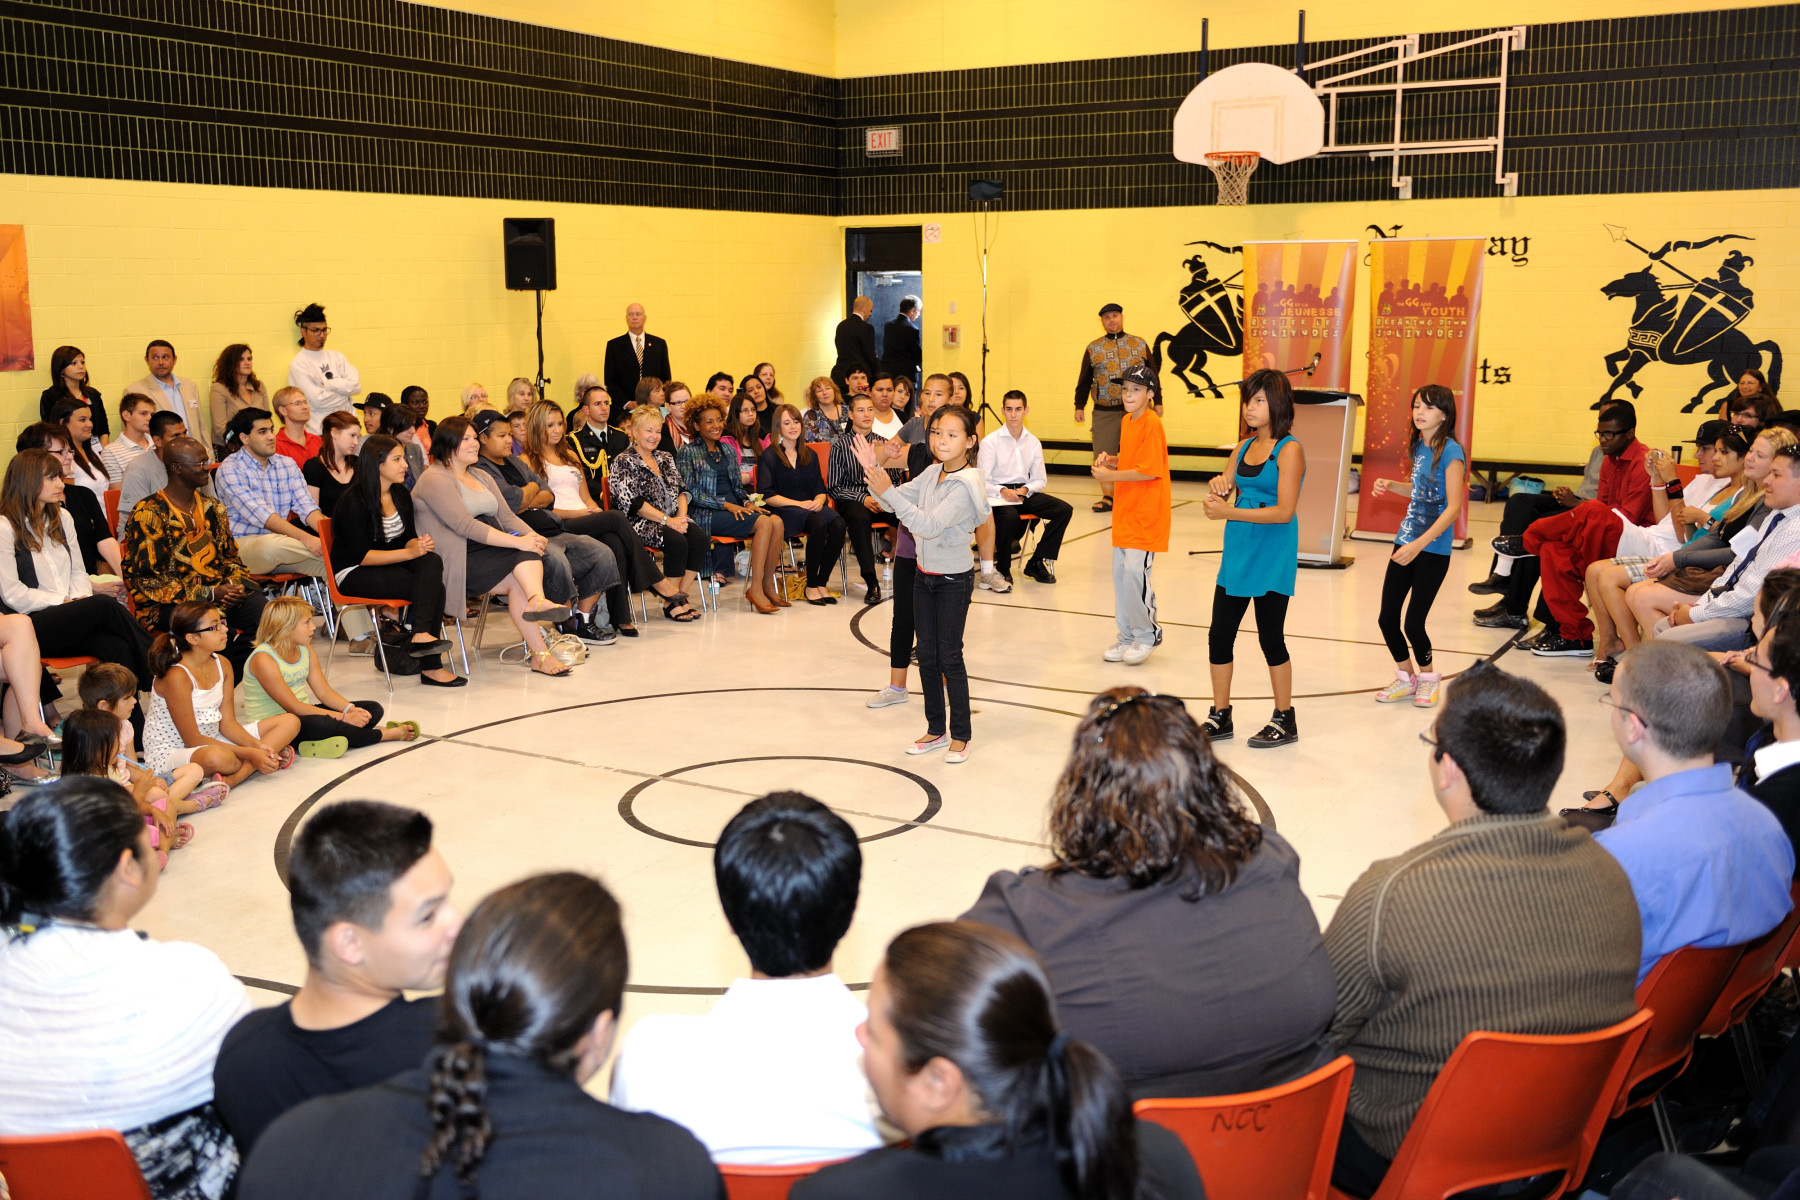 In June 2007, the Governor General held an Urban Arts Forum, in which neighbourhood youth pleaded for help to get rid of the gangs terrorizing their community. Their words inspired residents to reduce crime to astonishingly low levels in just eight months.